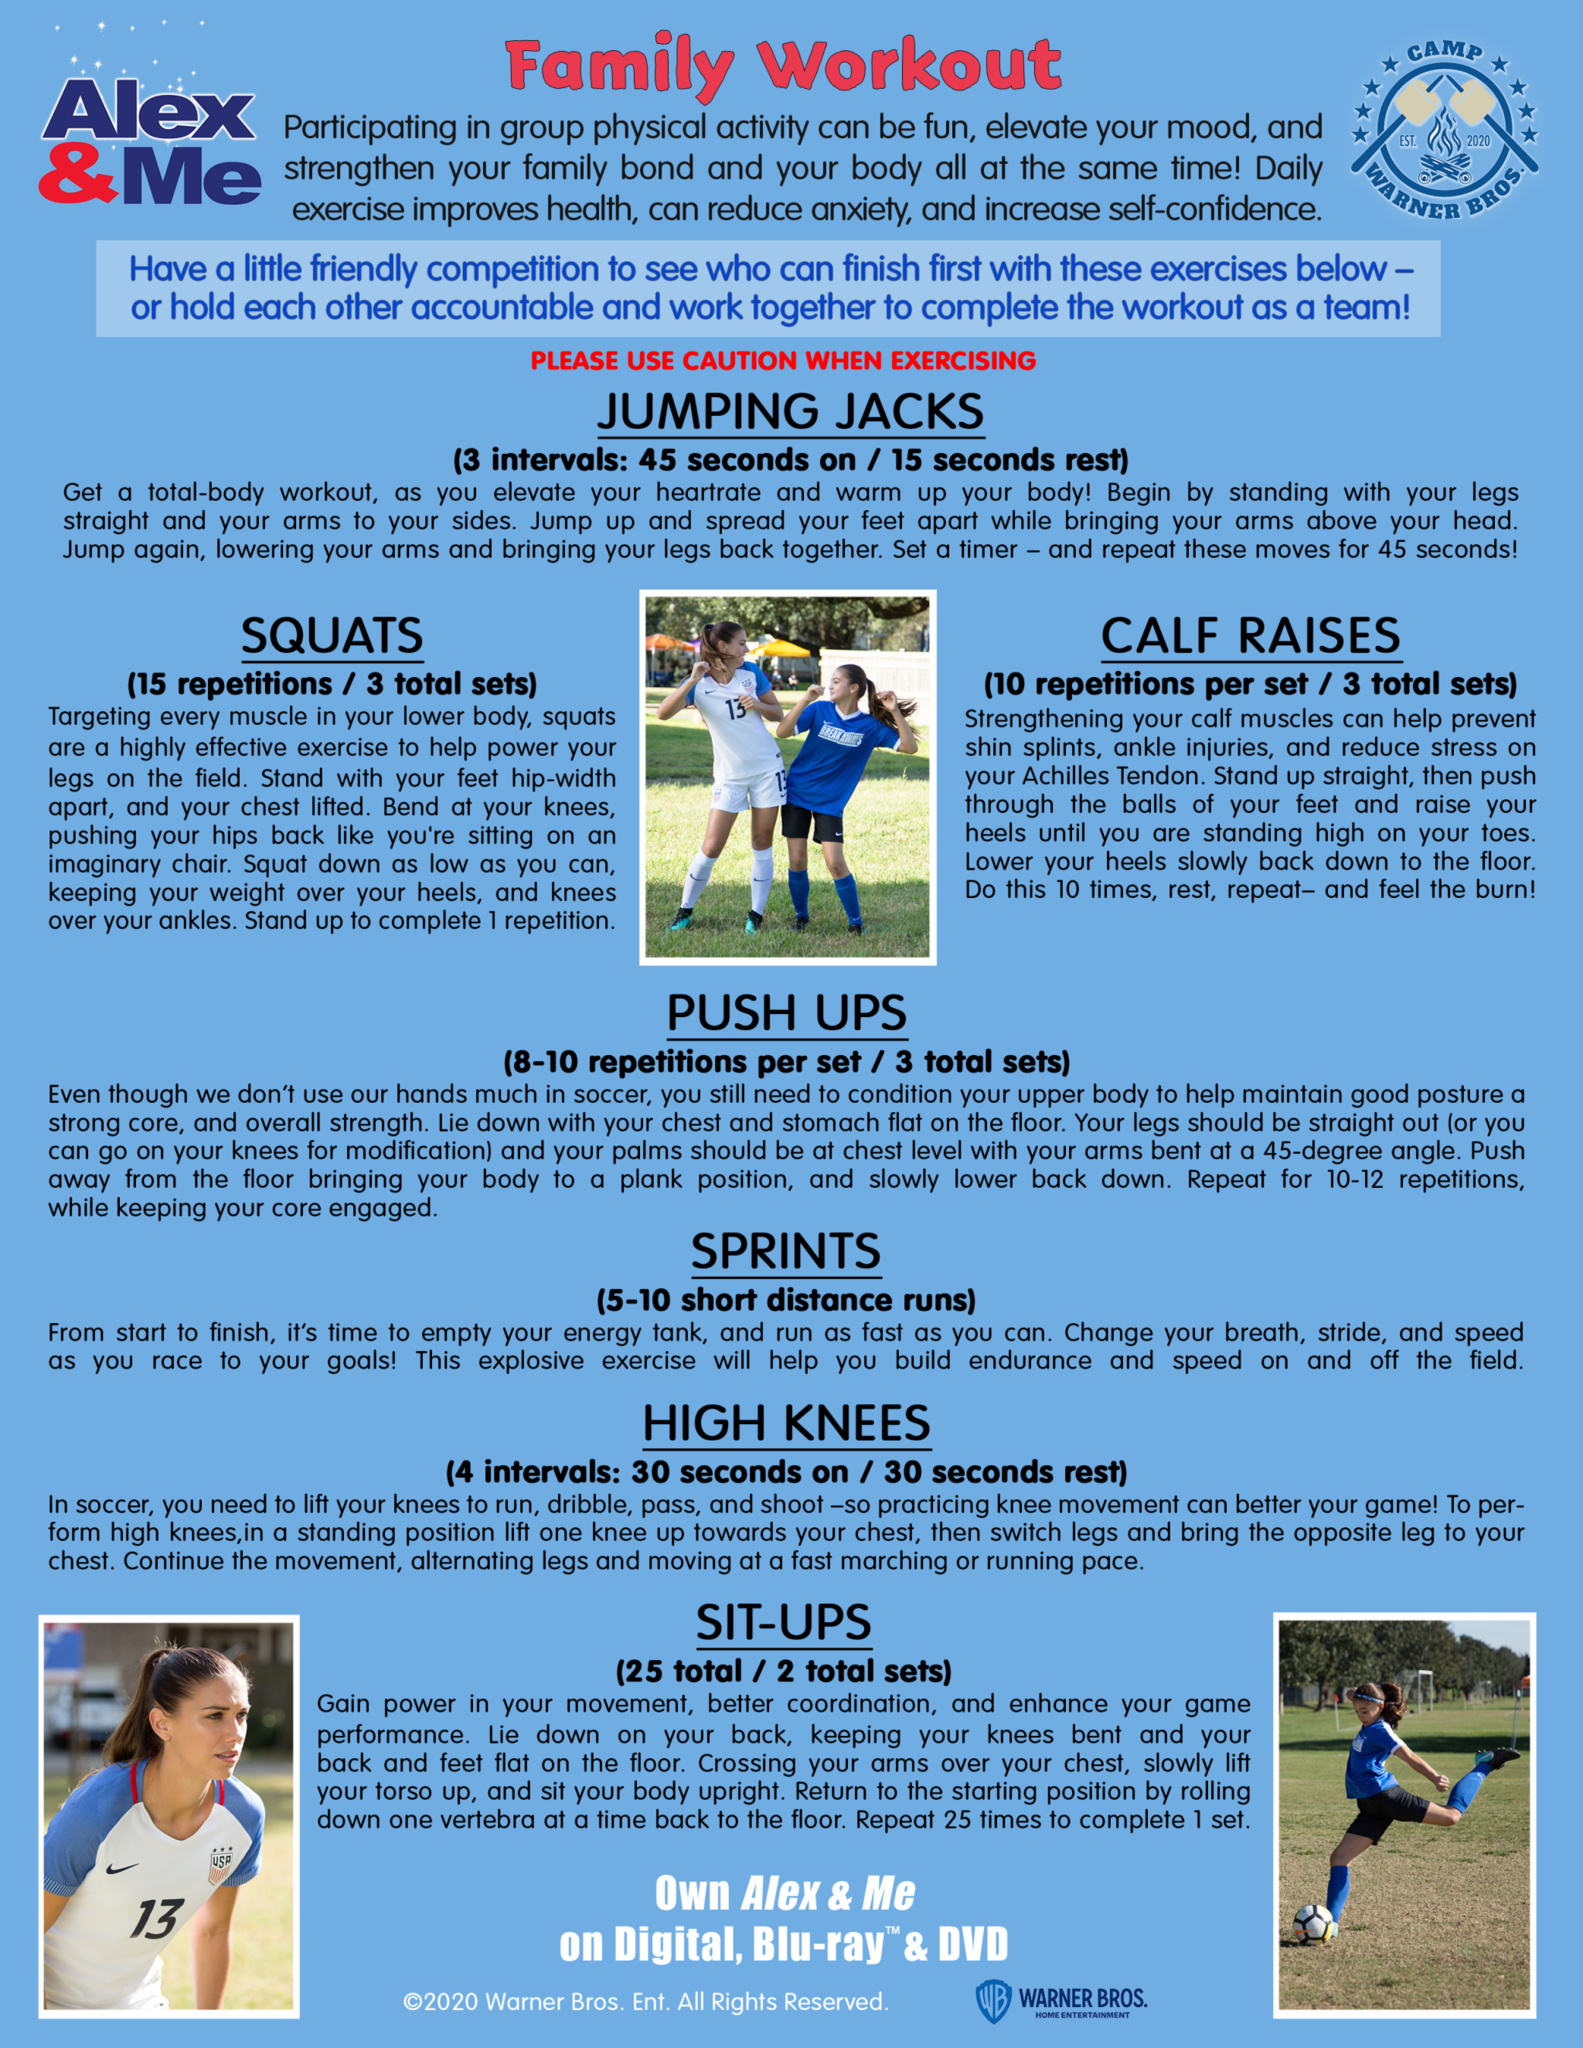 printable page with descriptions of exercises to do as a family